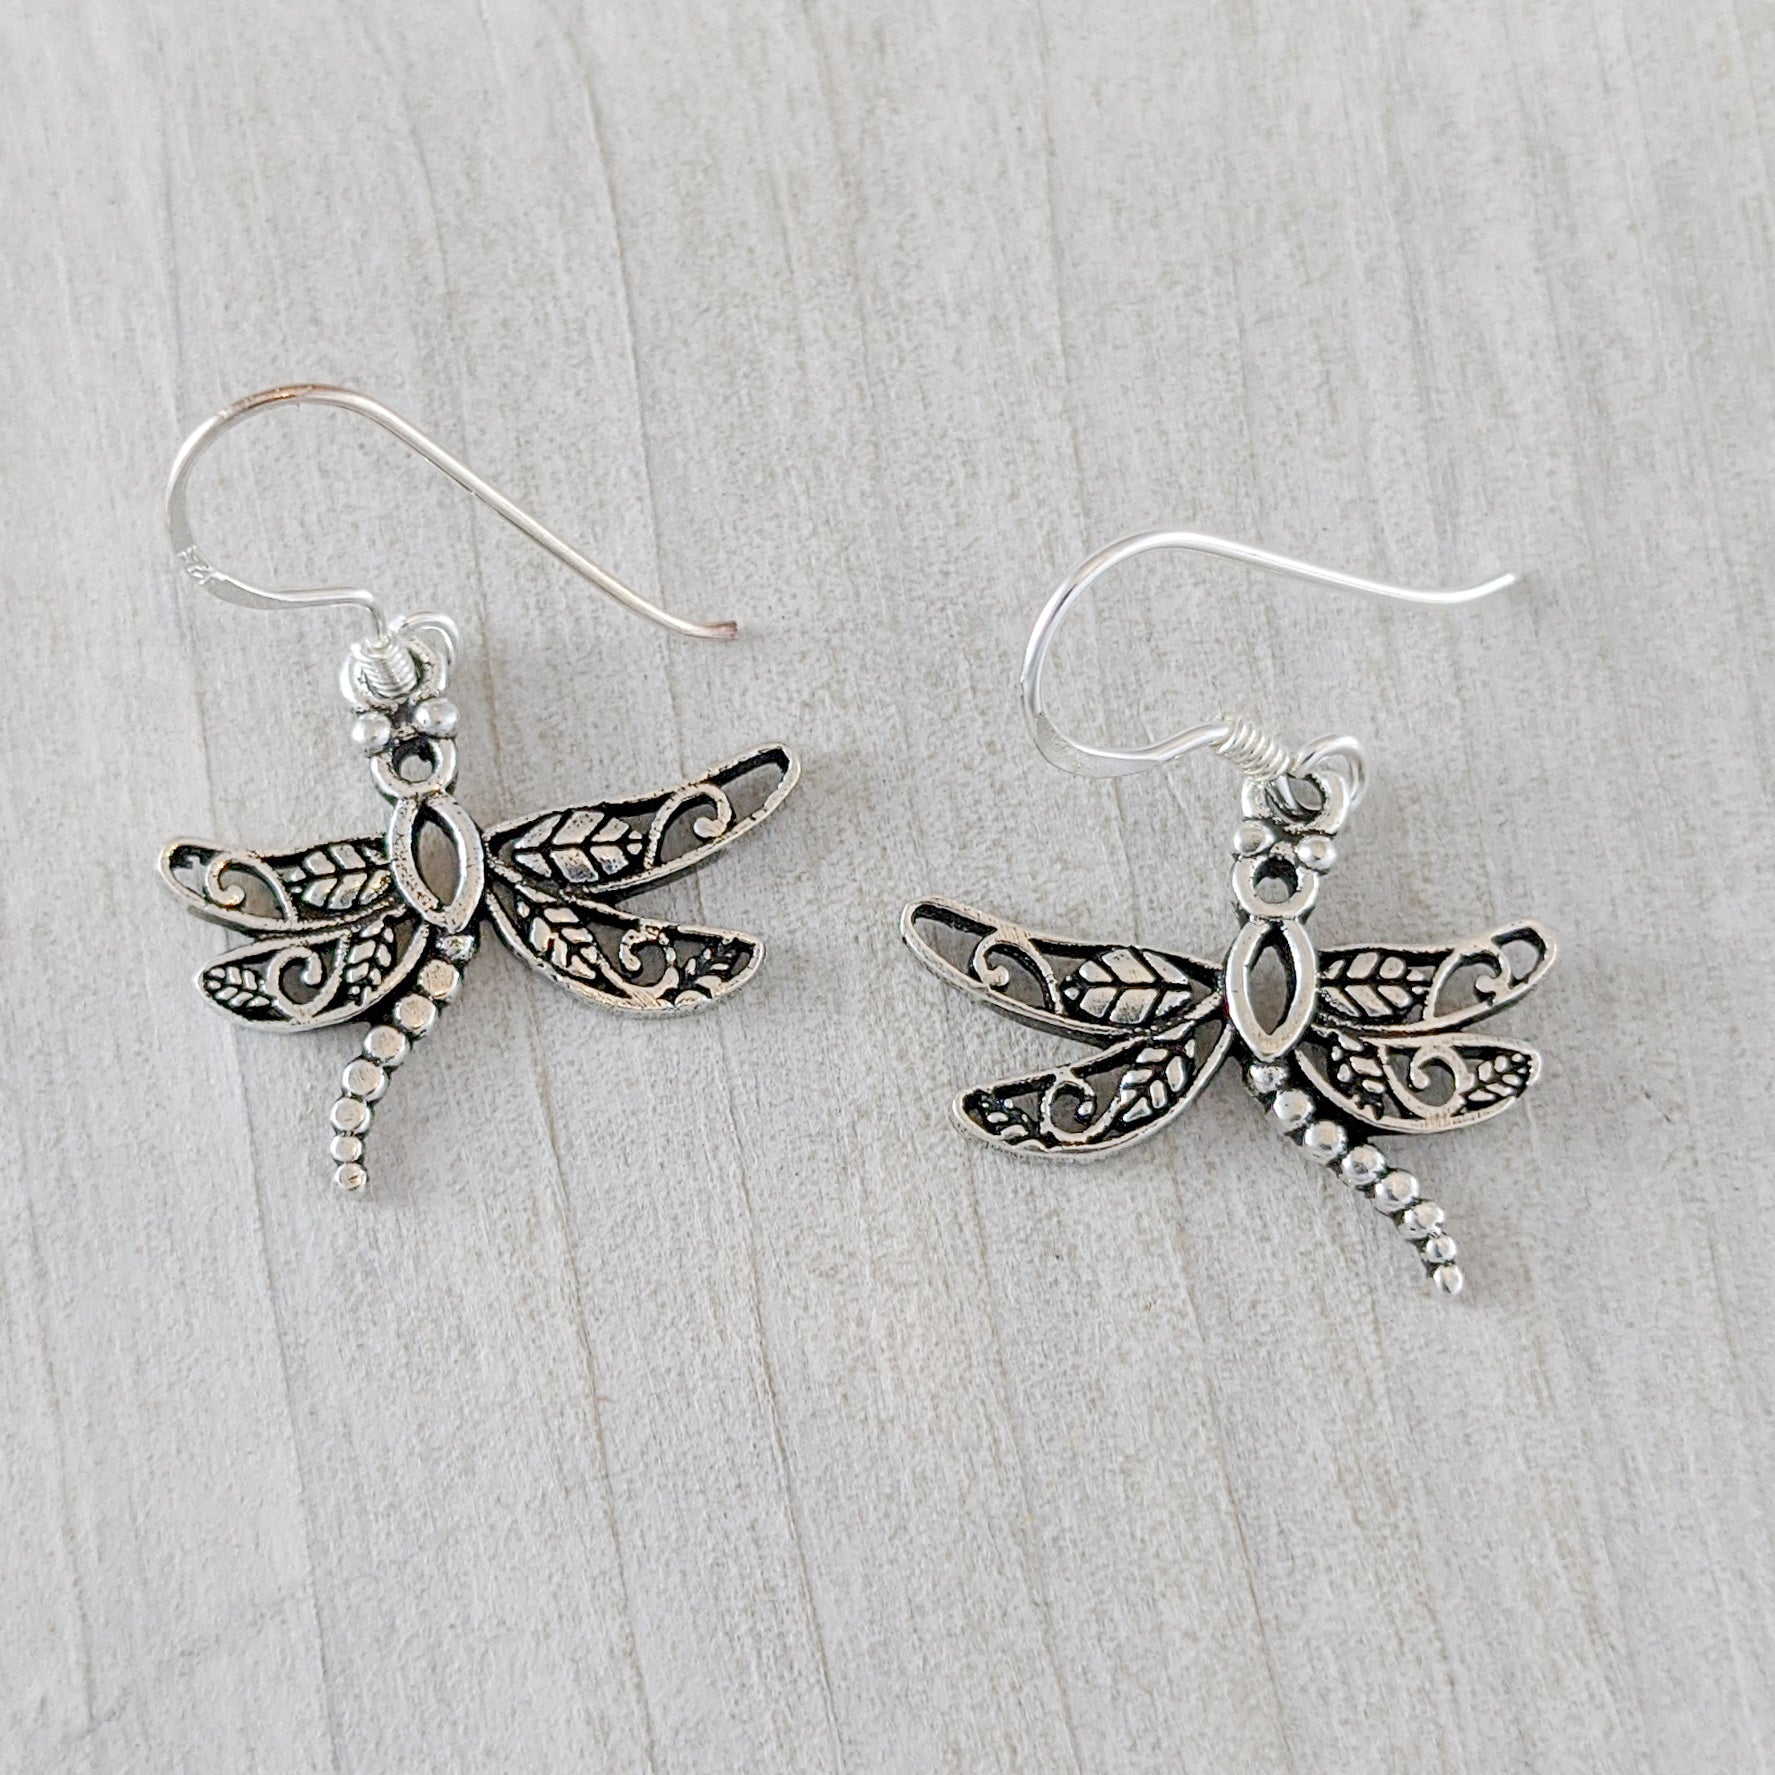 Dragonfly Earrings with Unique Wings, Sterling Silver